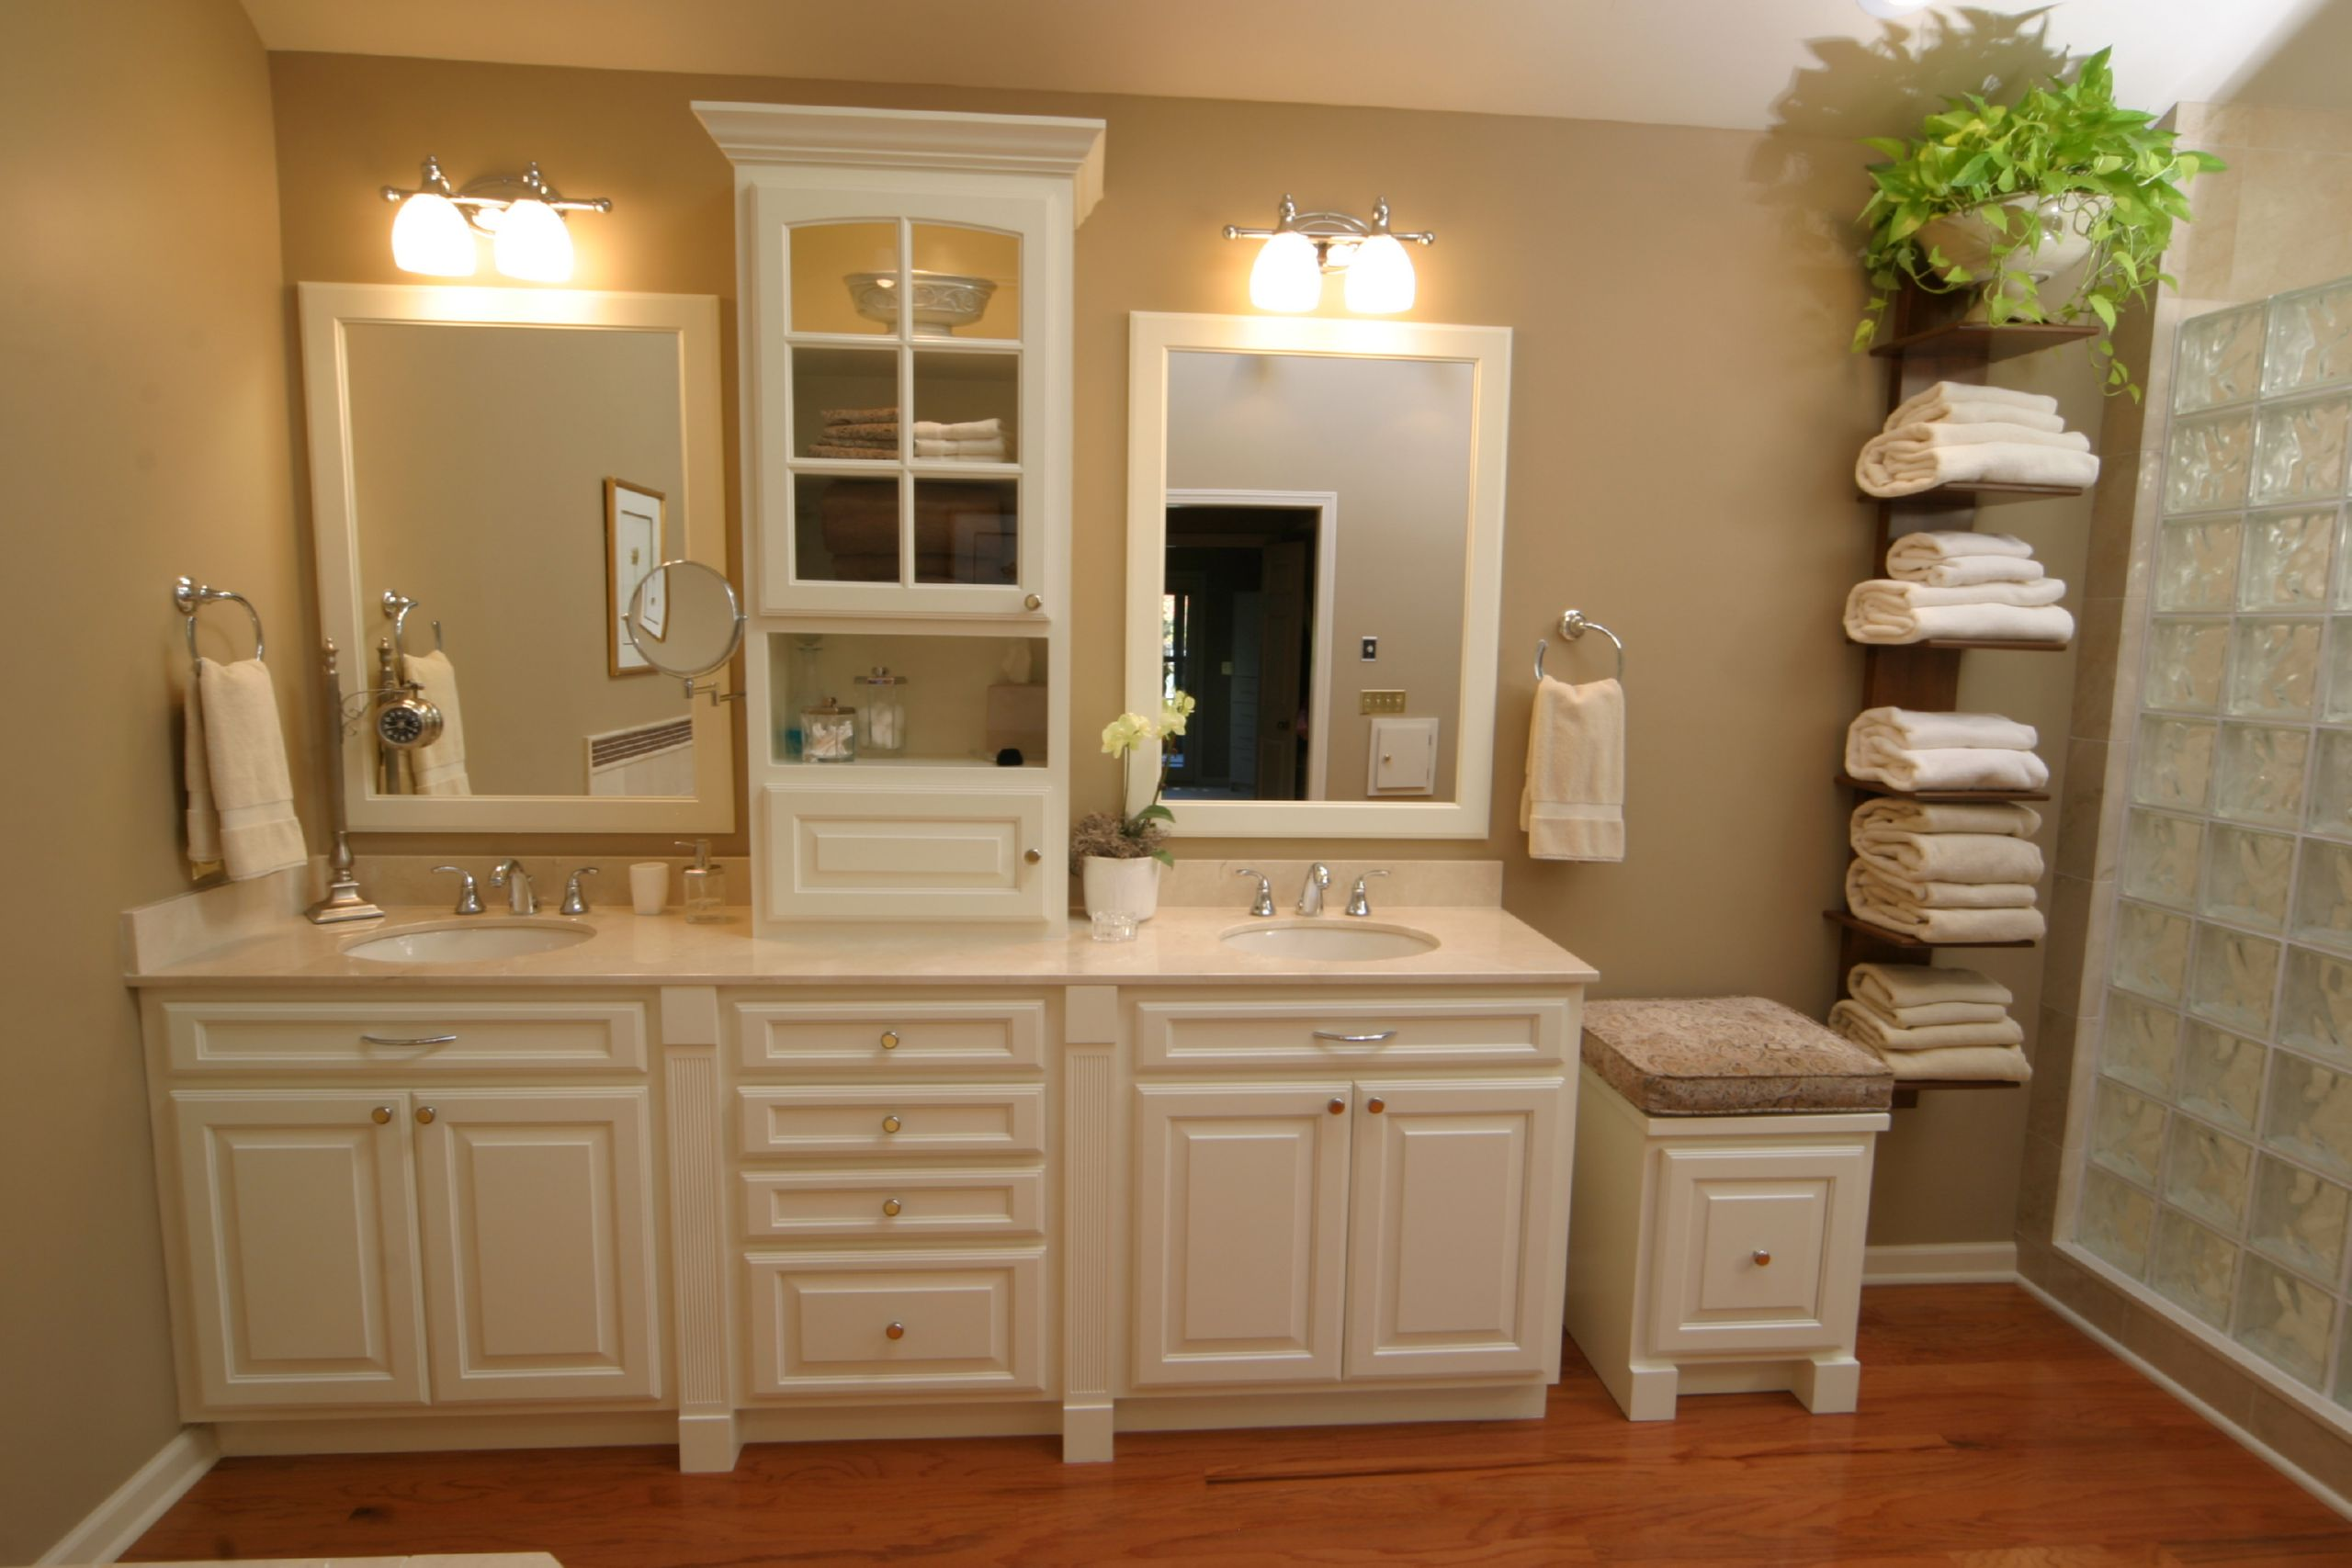 Bathroom Remodeling bathroom remodeling tips - njw construction